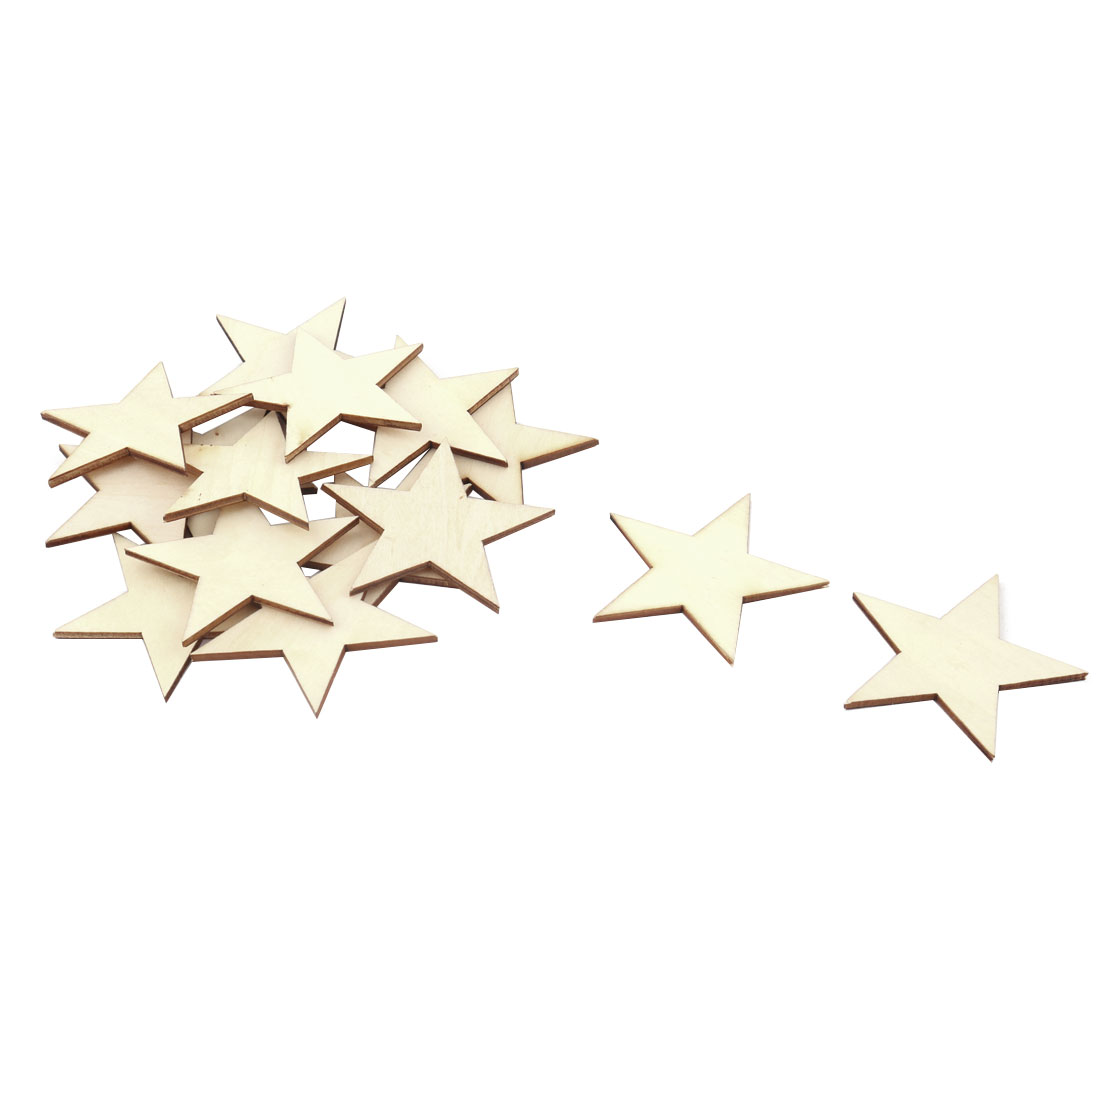 Wooden Star Shaped DIY Craft Christmas Tree Accessories Ornaments Beige 60 x 60mm 15pcs